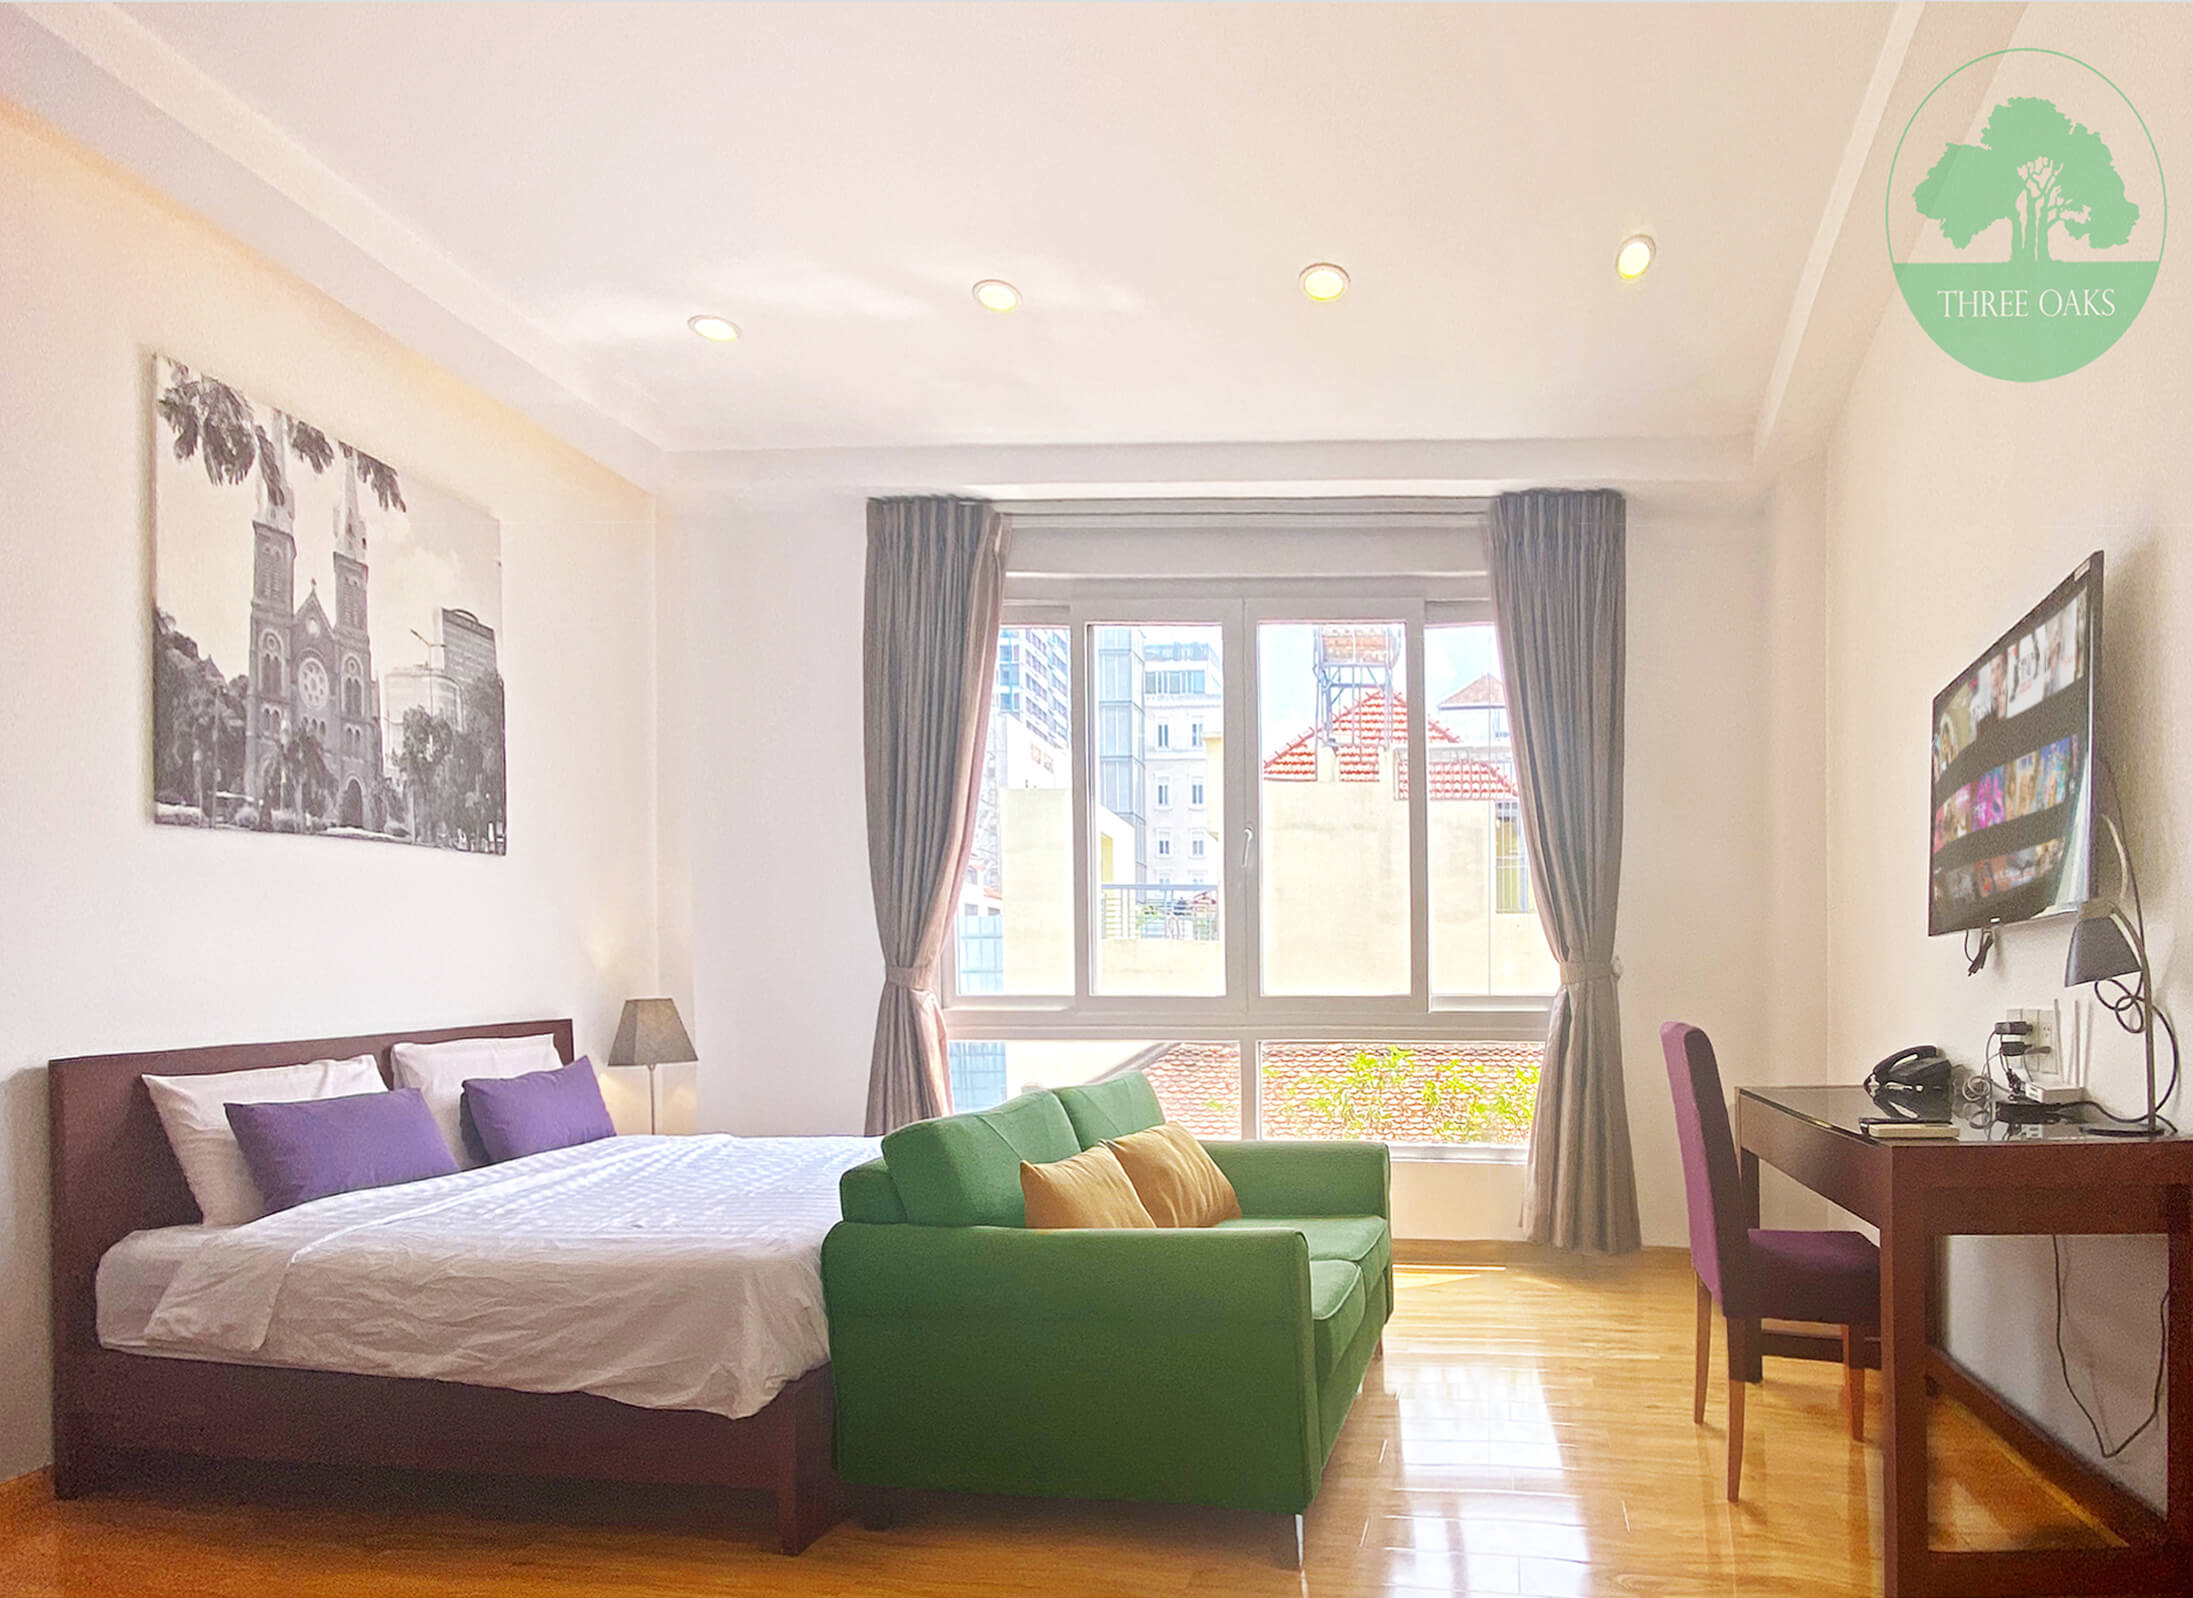 Housing-Apartments-for-rent-in-Saigon-tybe-a-1a-13